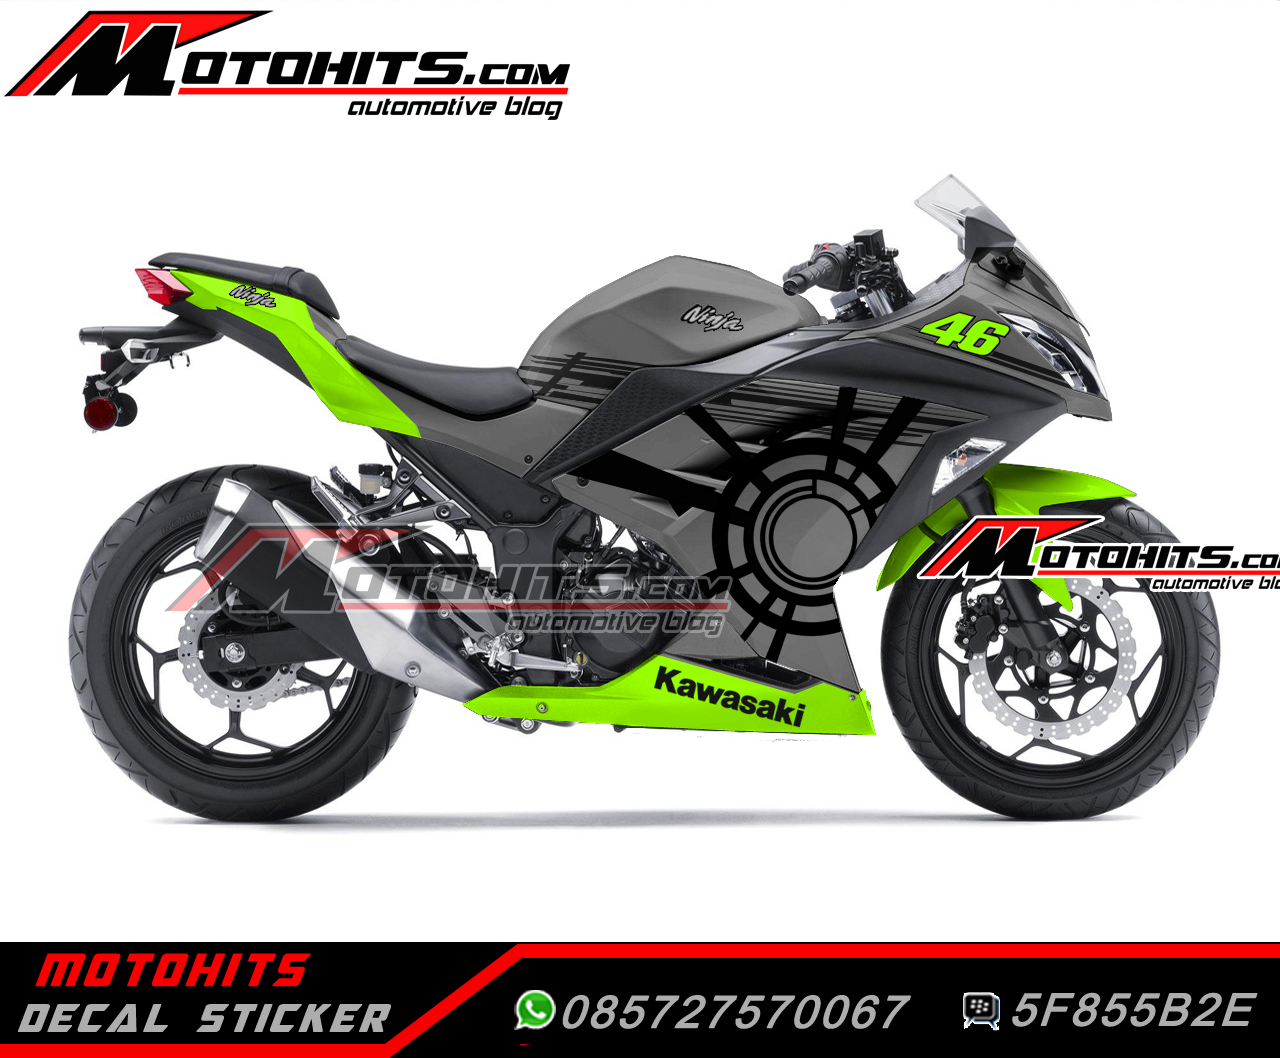 Decal Sticker Kawasaki Ninja 250 Motohitscom